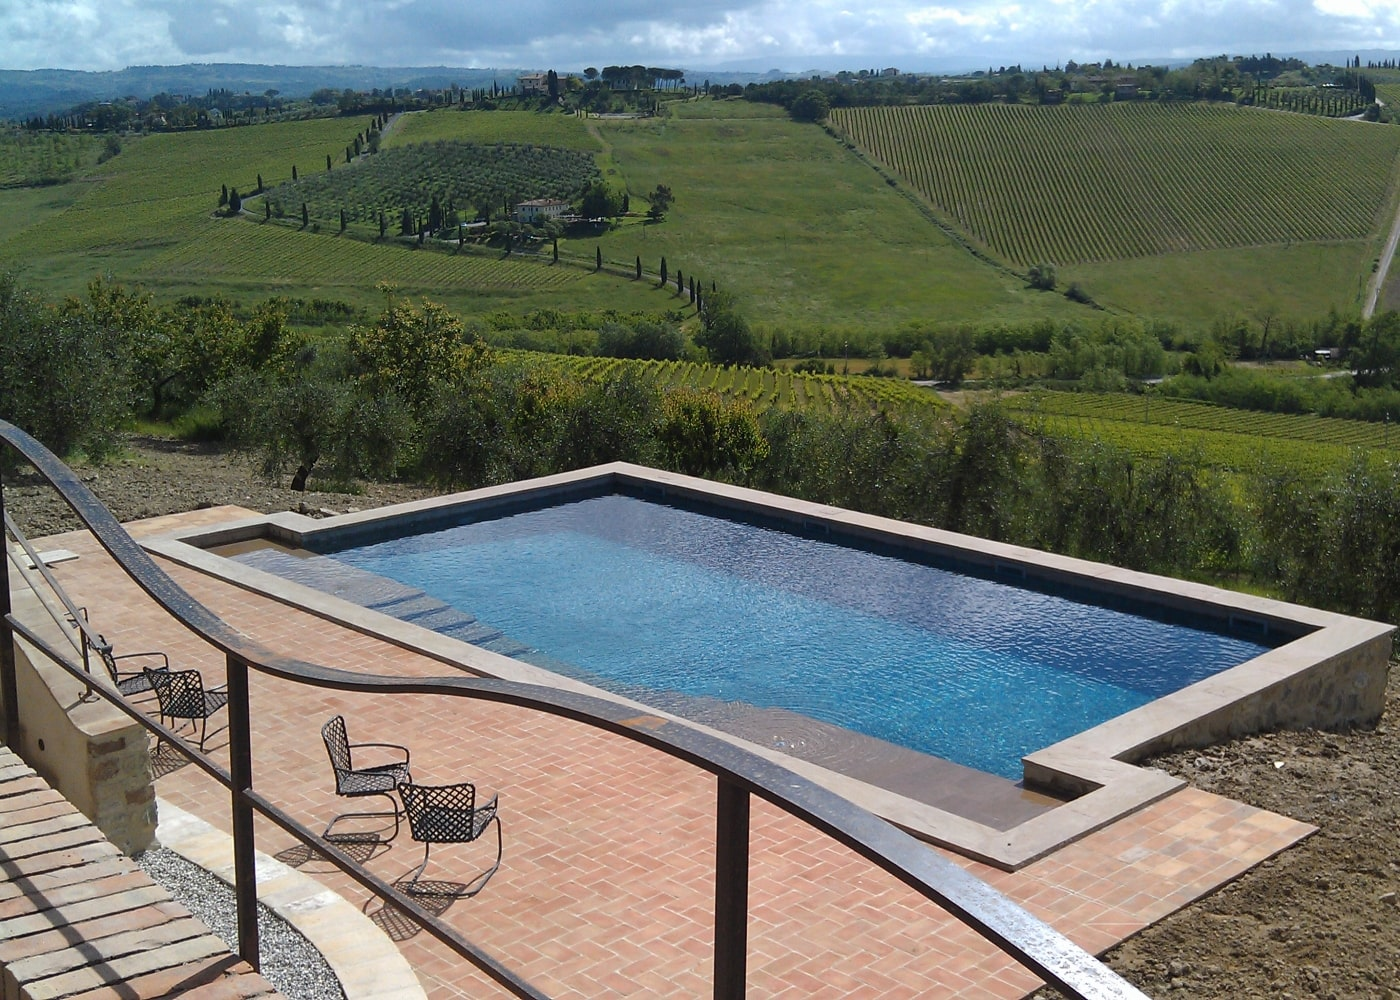 Design Pool in Tuscany by Gardenpool